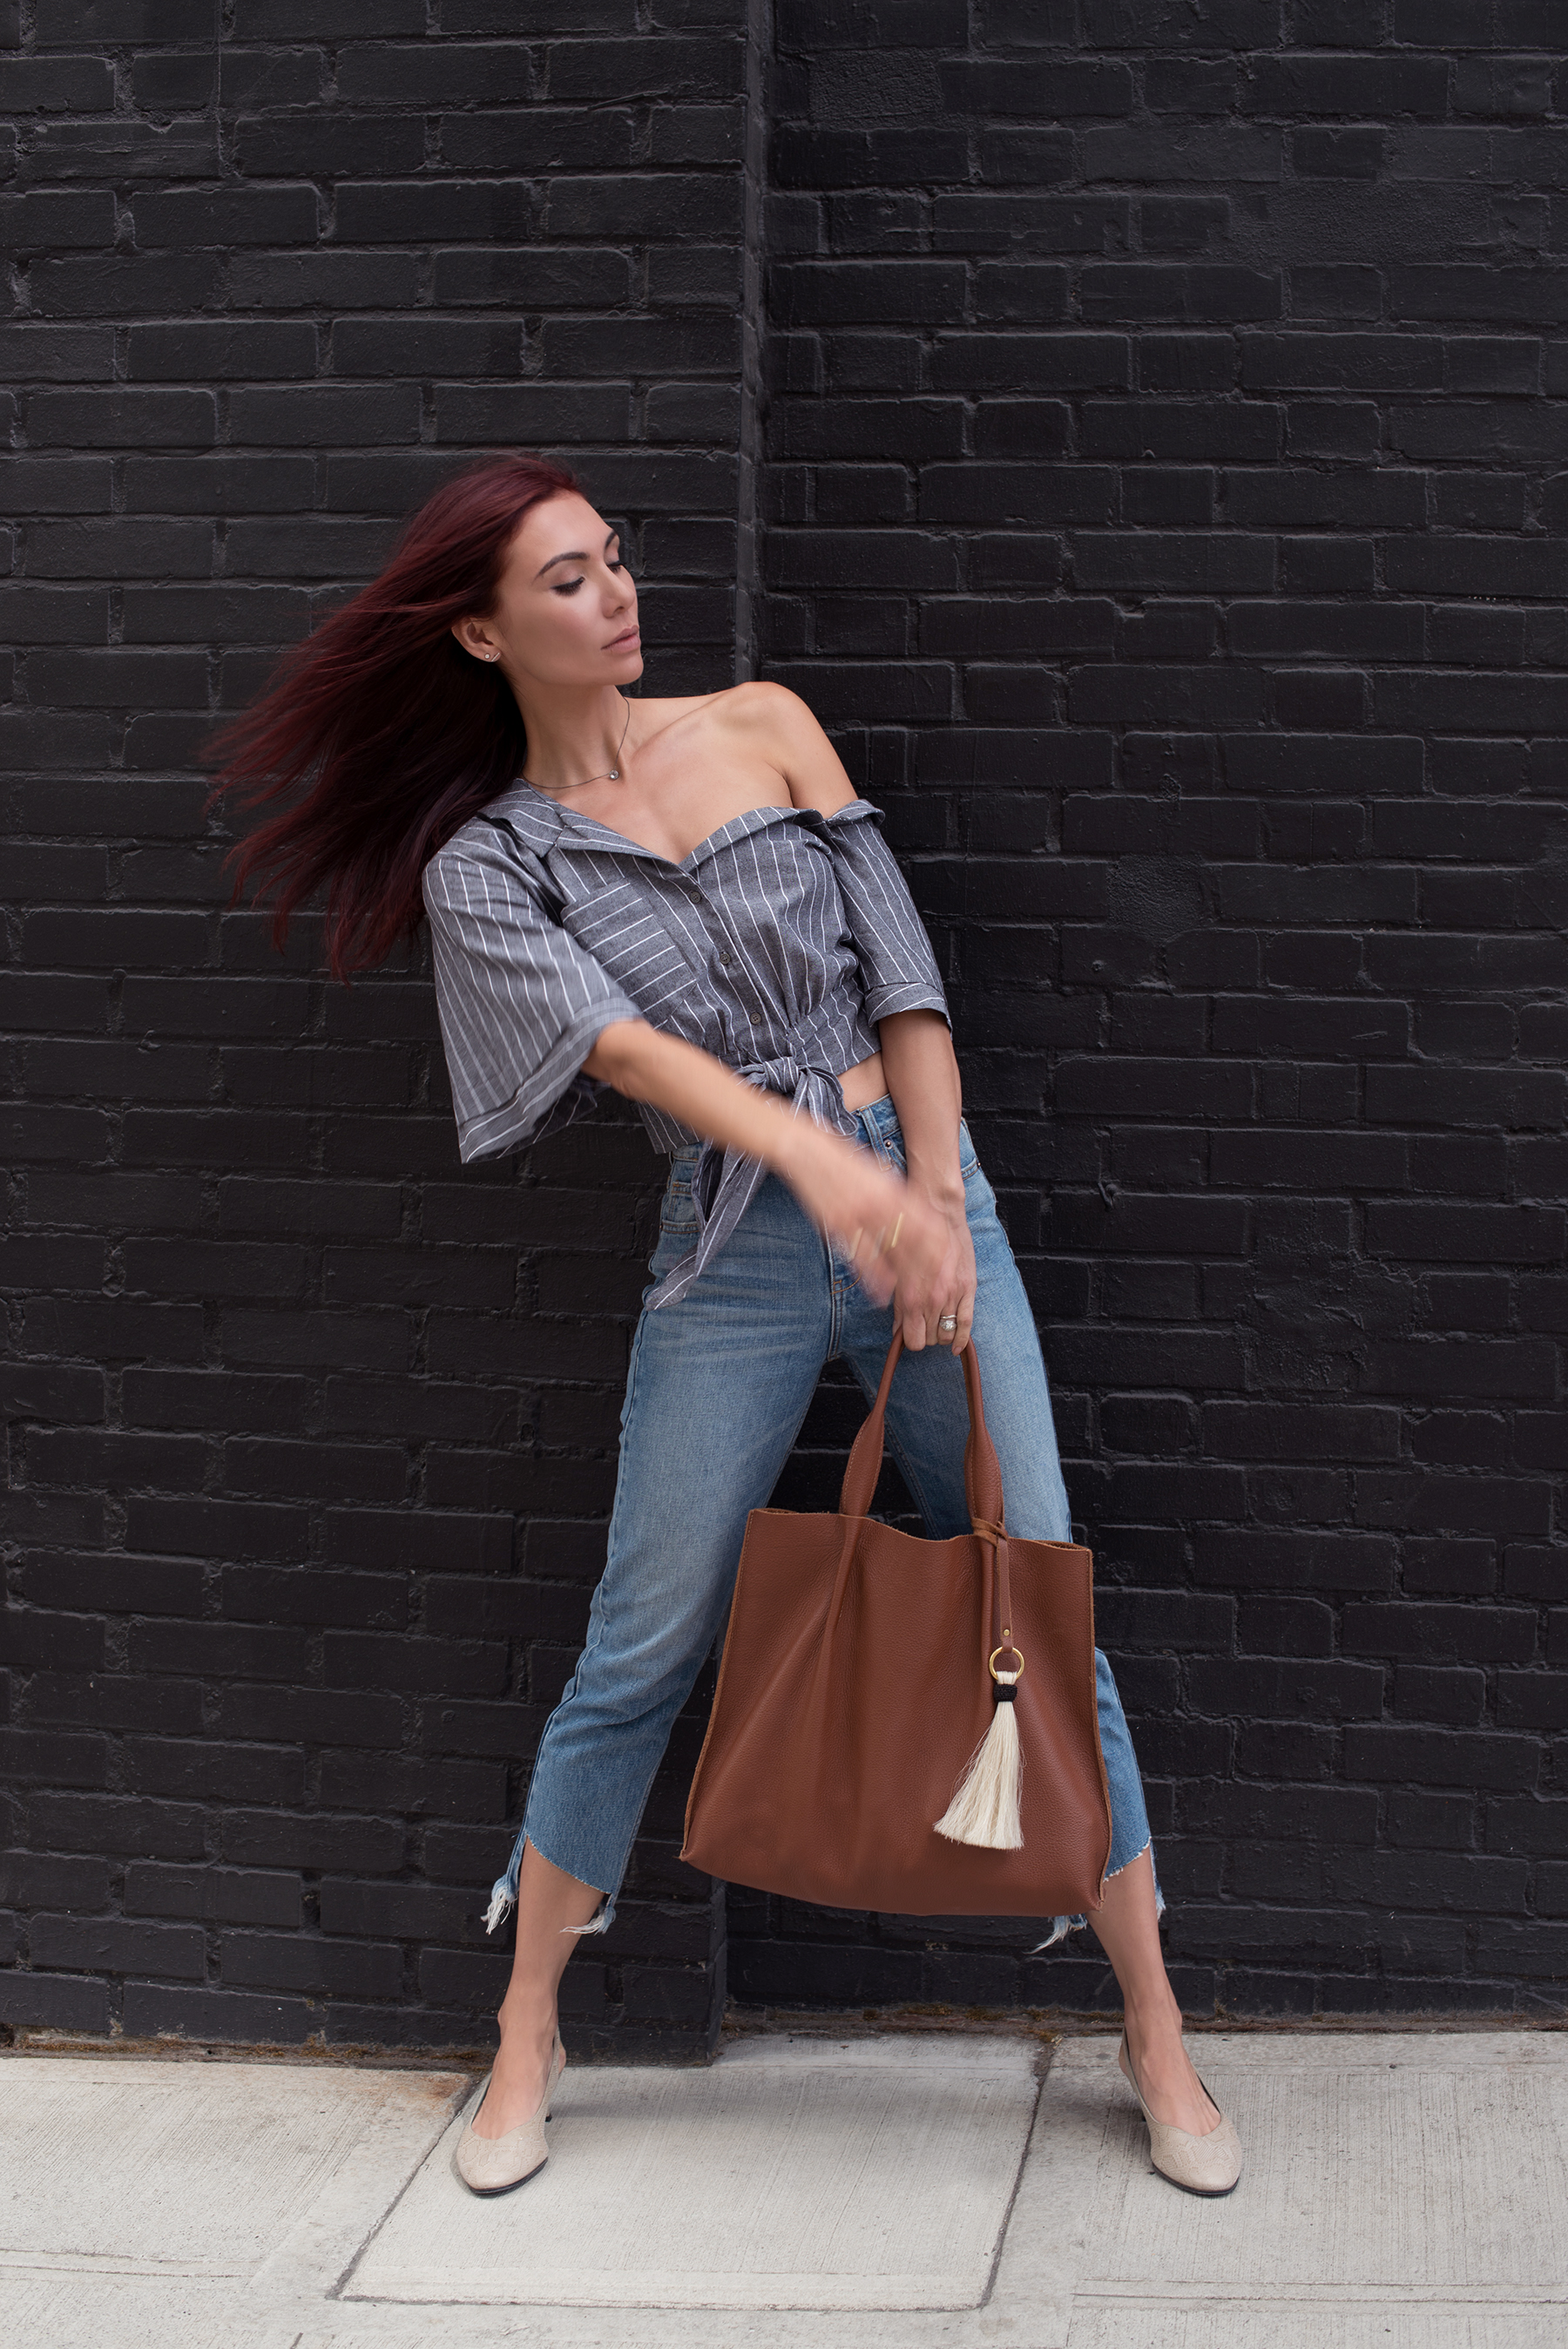 TOP   /   JEANS   / SHOES (similar   HERE  ) /   BAG   /   NECKLACE   /